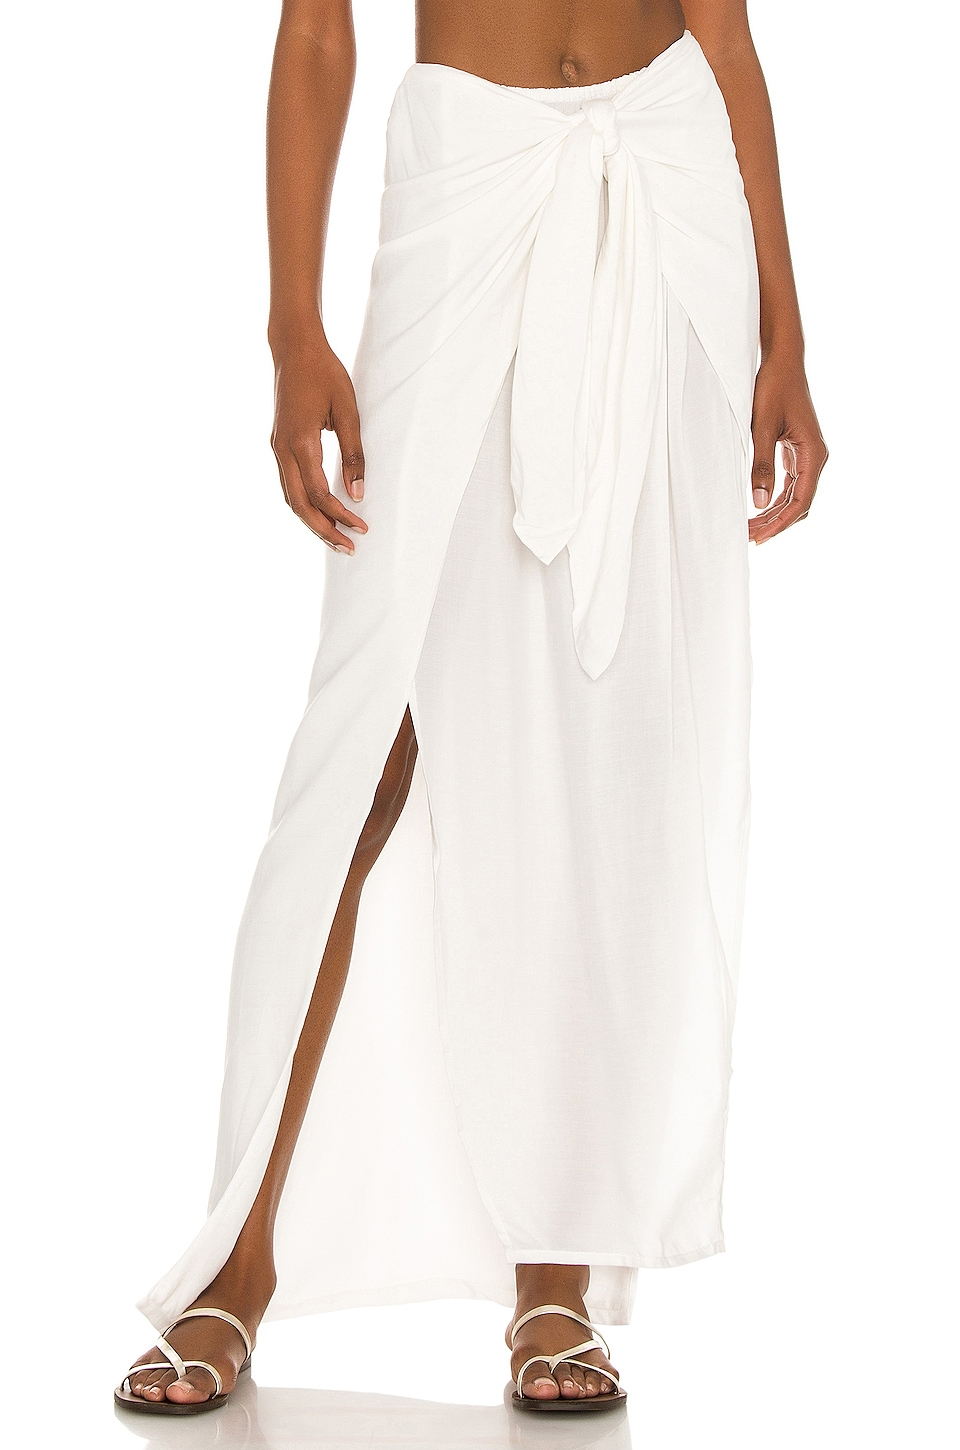 Tigre Sarong Skirt in Ivory